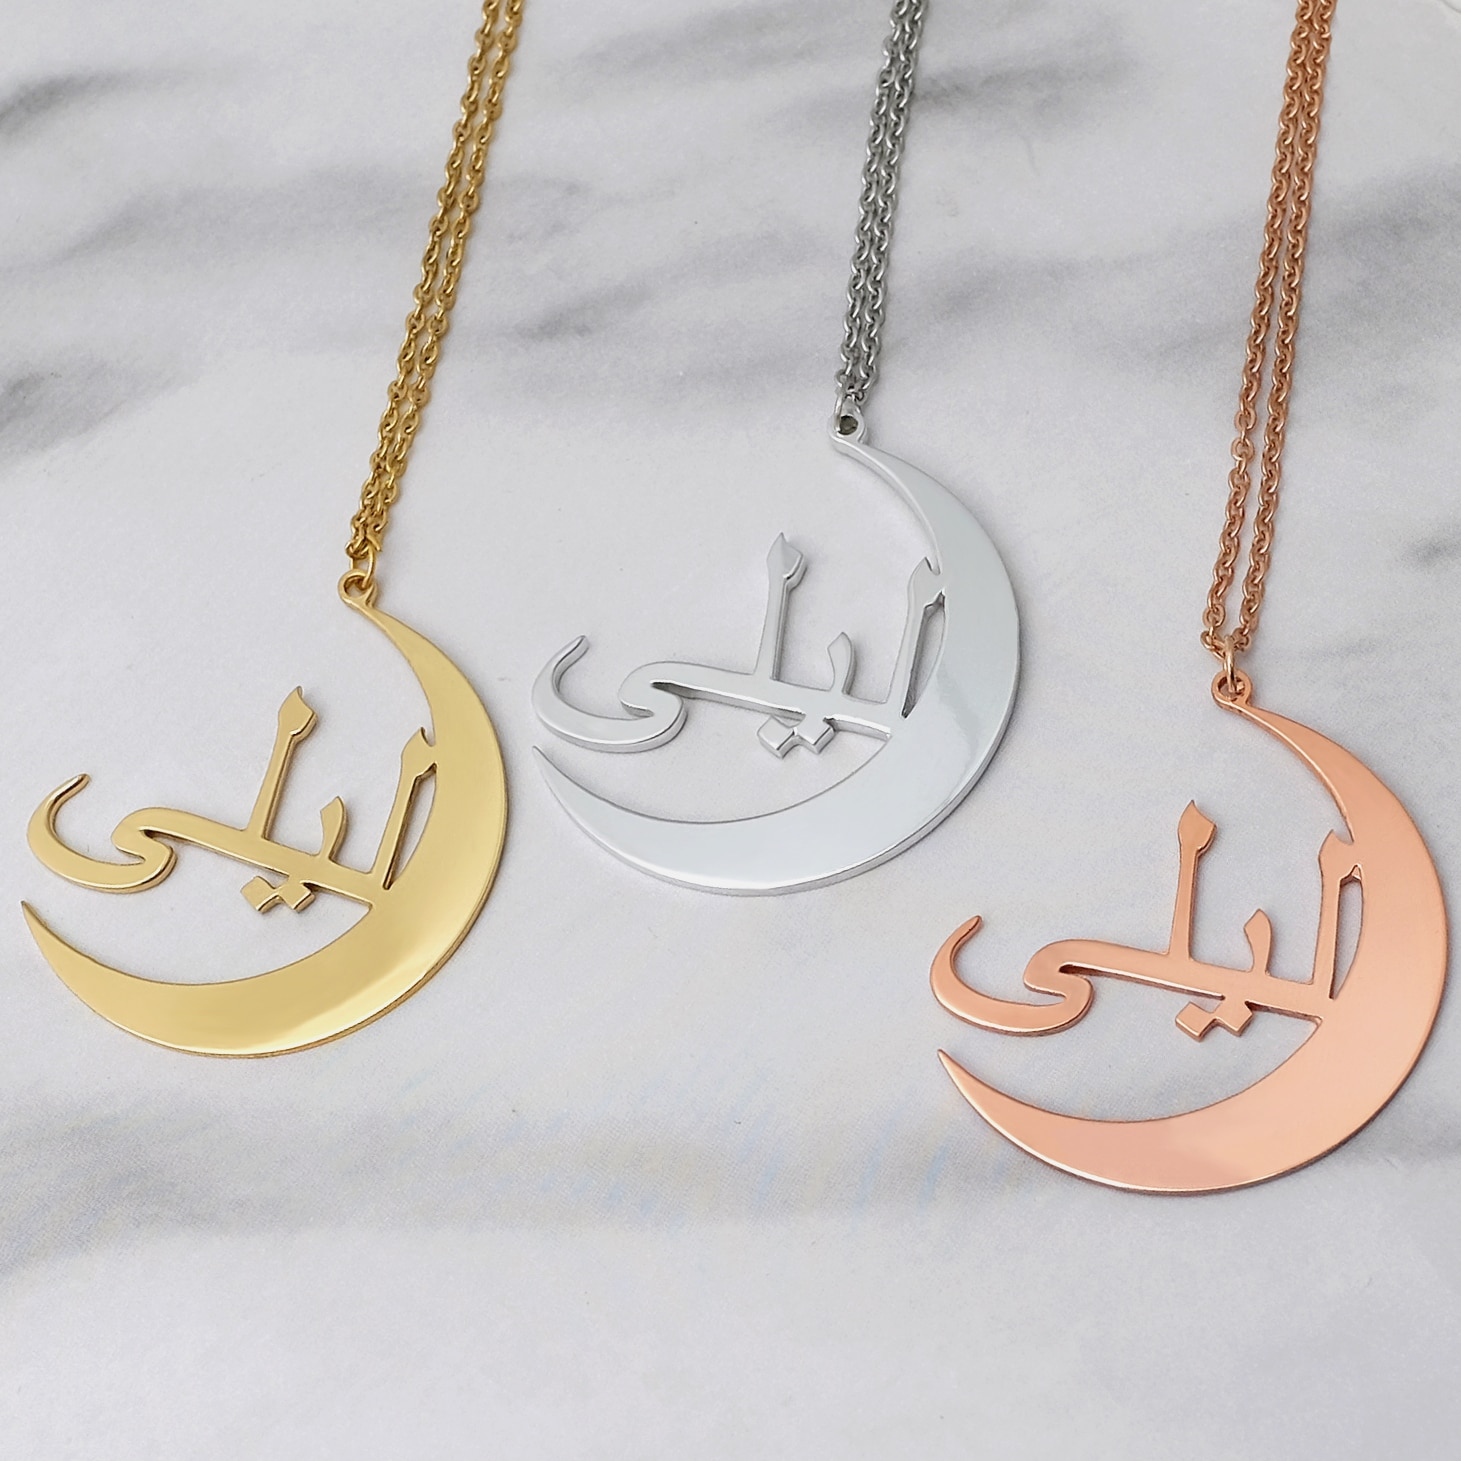 Customize Arabic Name Necklace, Arabic Necklace,Personalized Arabic Name Necklace,Islam Necklace,Arabic Jewelry Gift For Her fono arabic standard dictionary arabic turkish turkish arabic collective for arabic learners